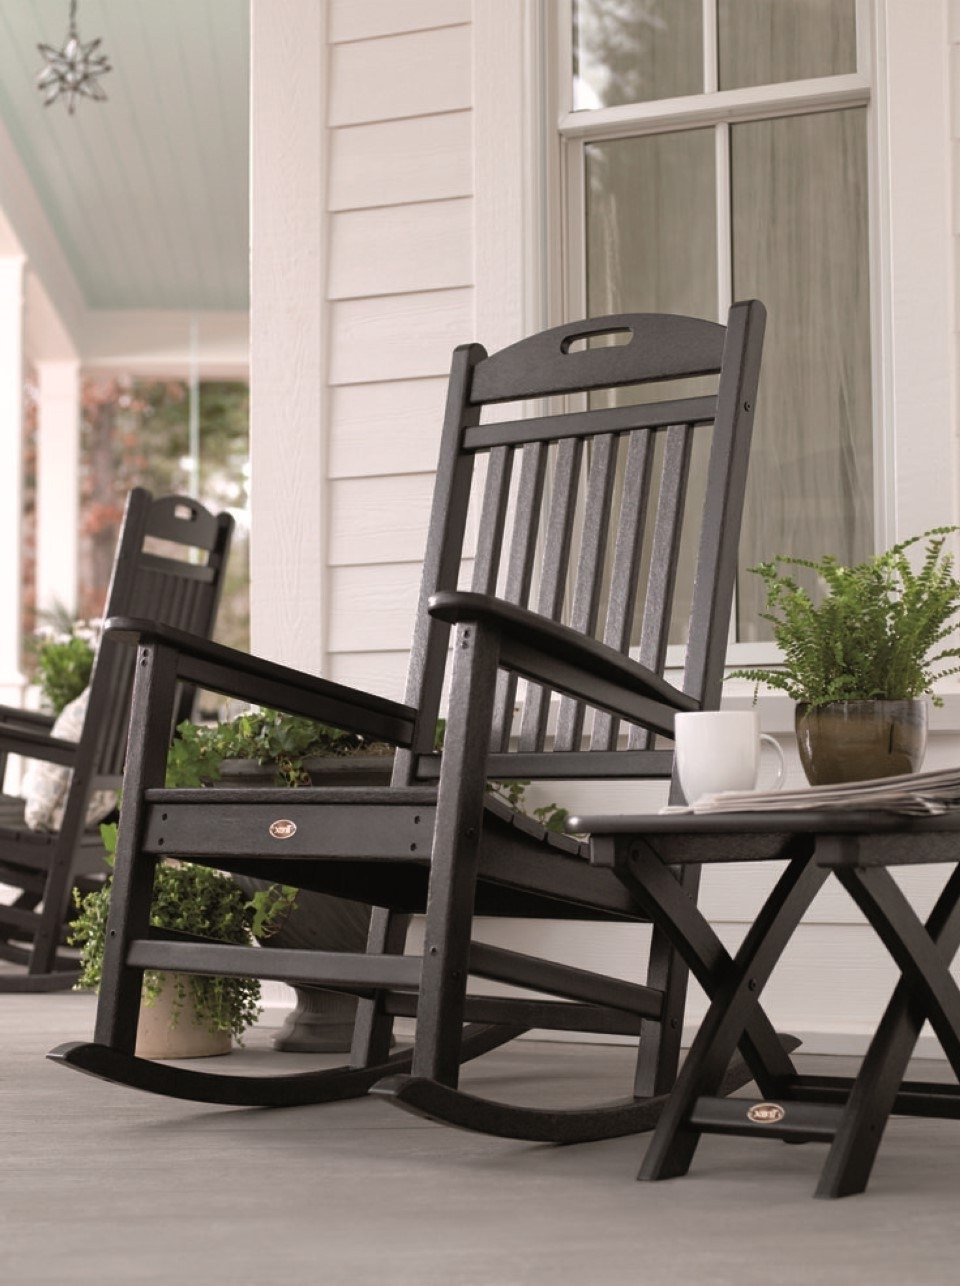 Outdoor Vinyl Rocking Chairs Throughout Widely Used Winsome Most Outdoor Rocking Chair Outdoor Rocker Lowes Porch Rocker (View 9 of 15)